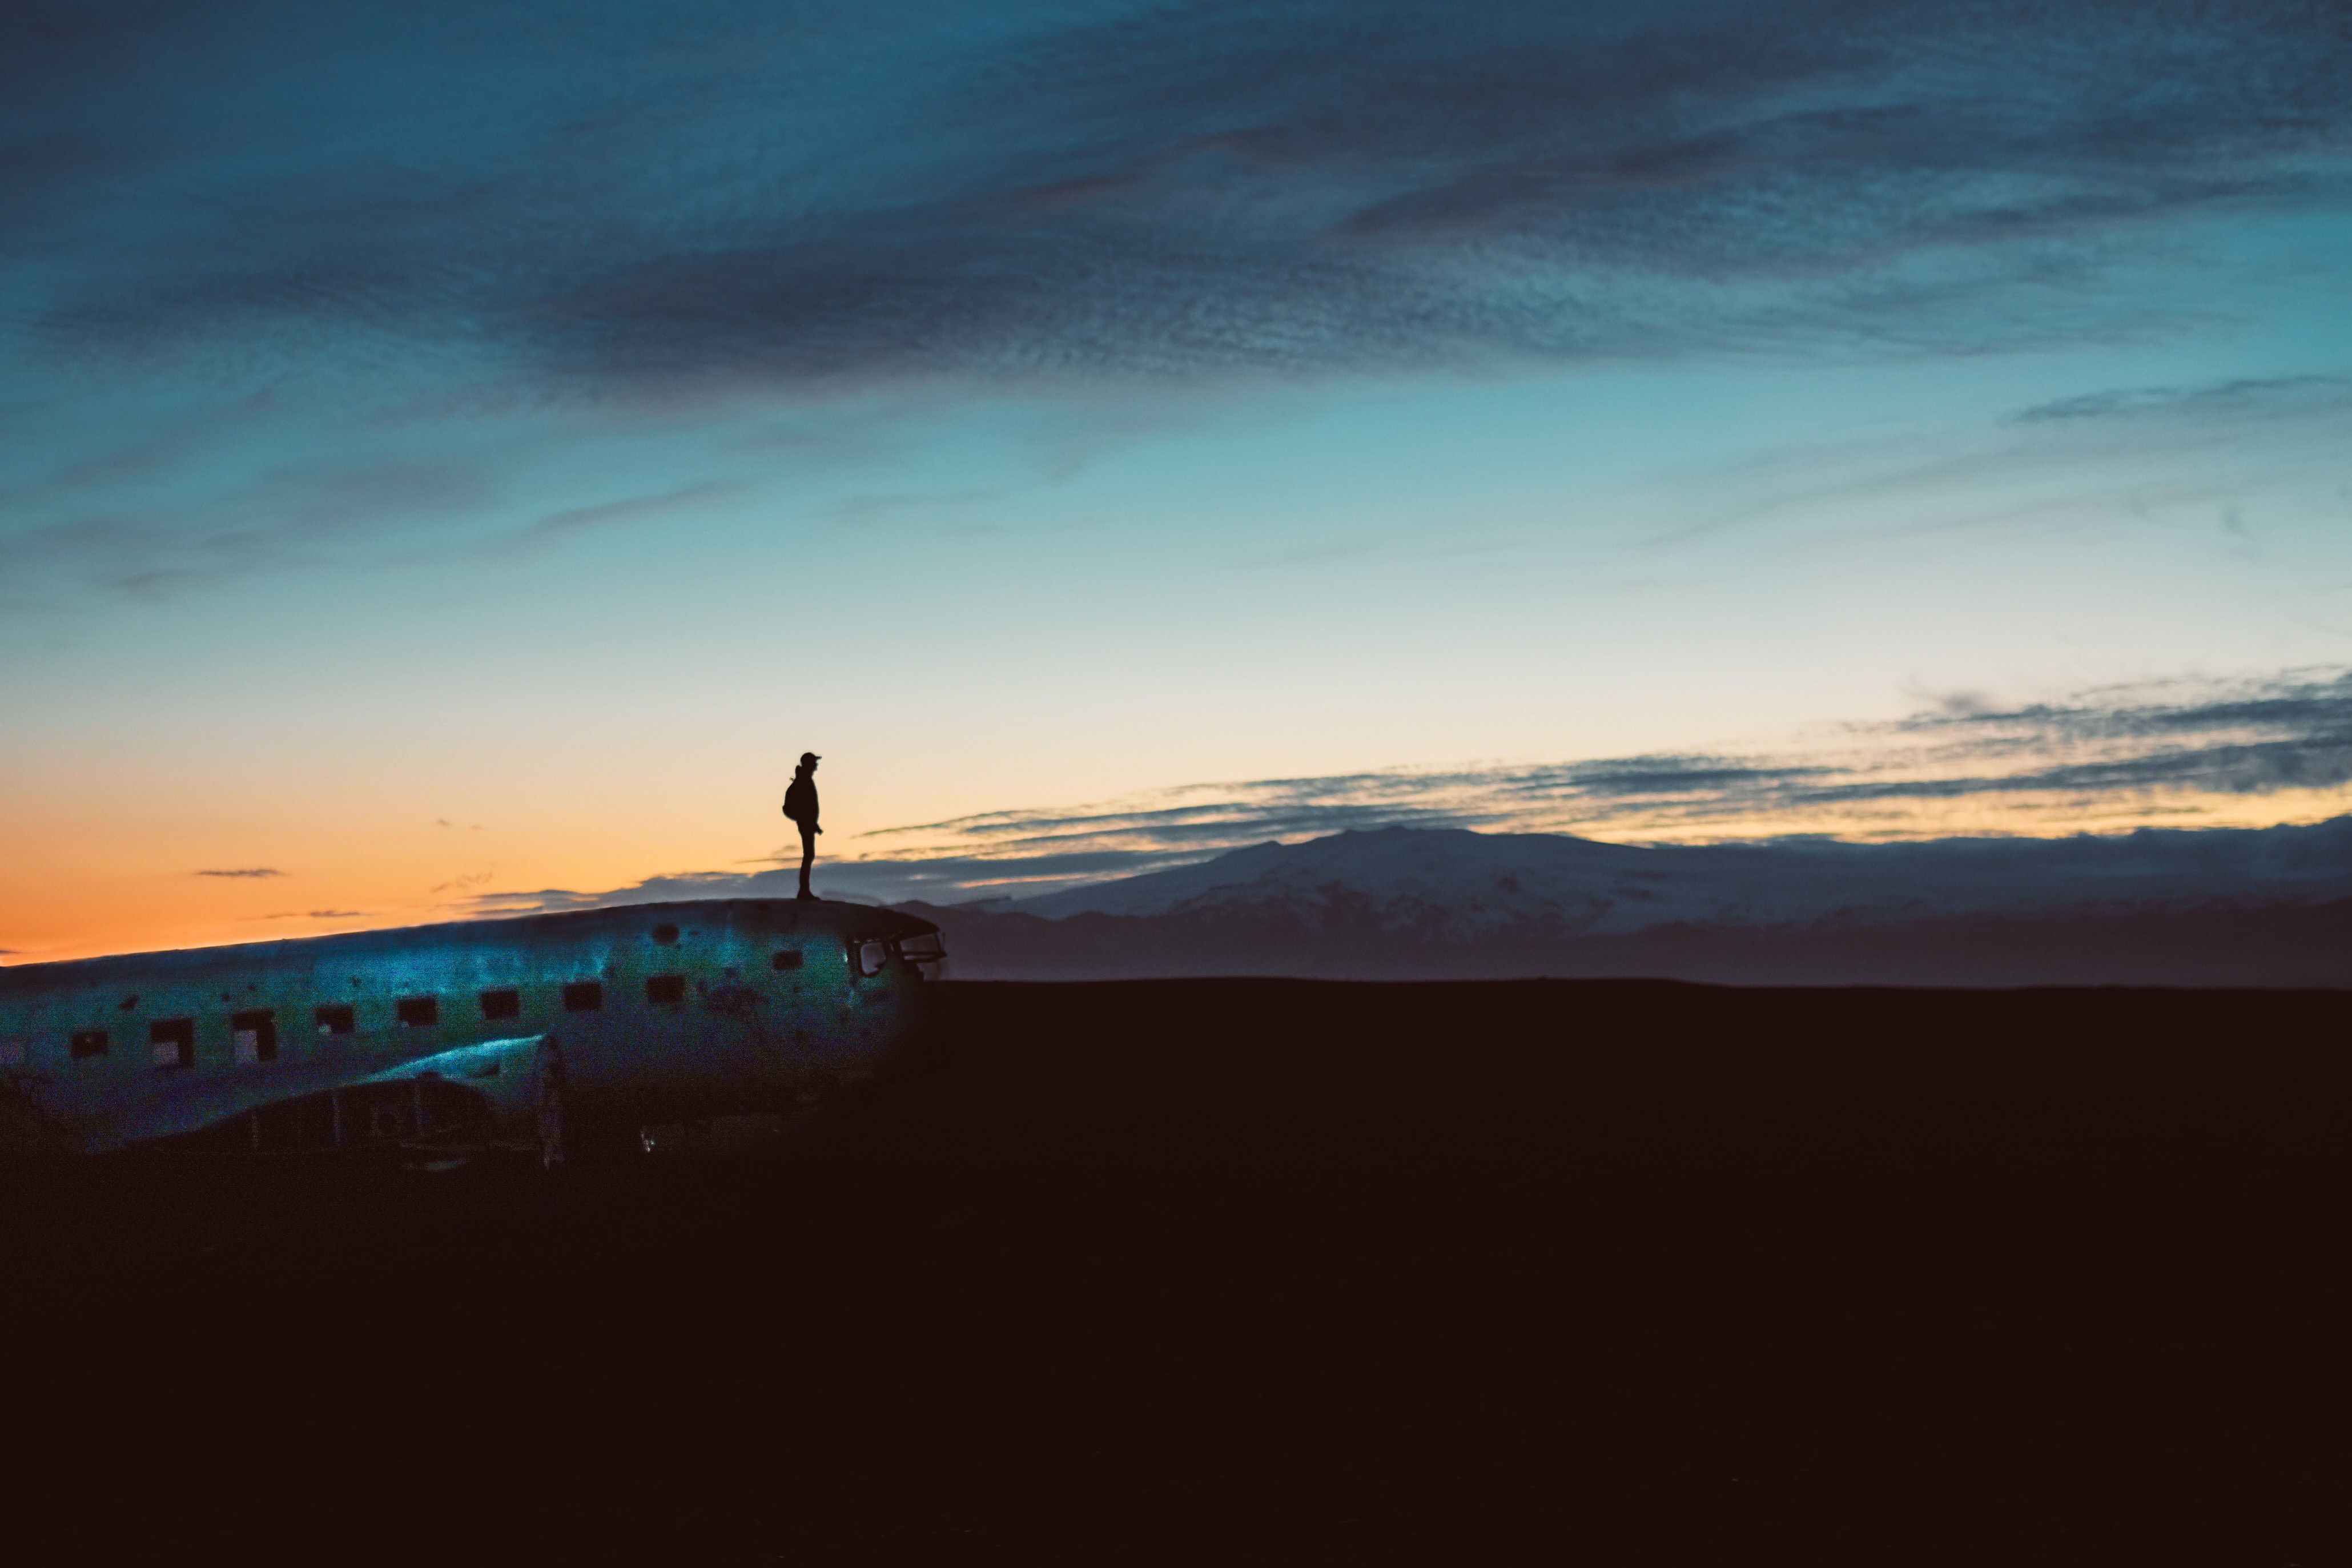 silhouette of a person wearing hat standing at edge of aircraft during a cloudy sunset